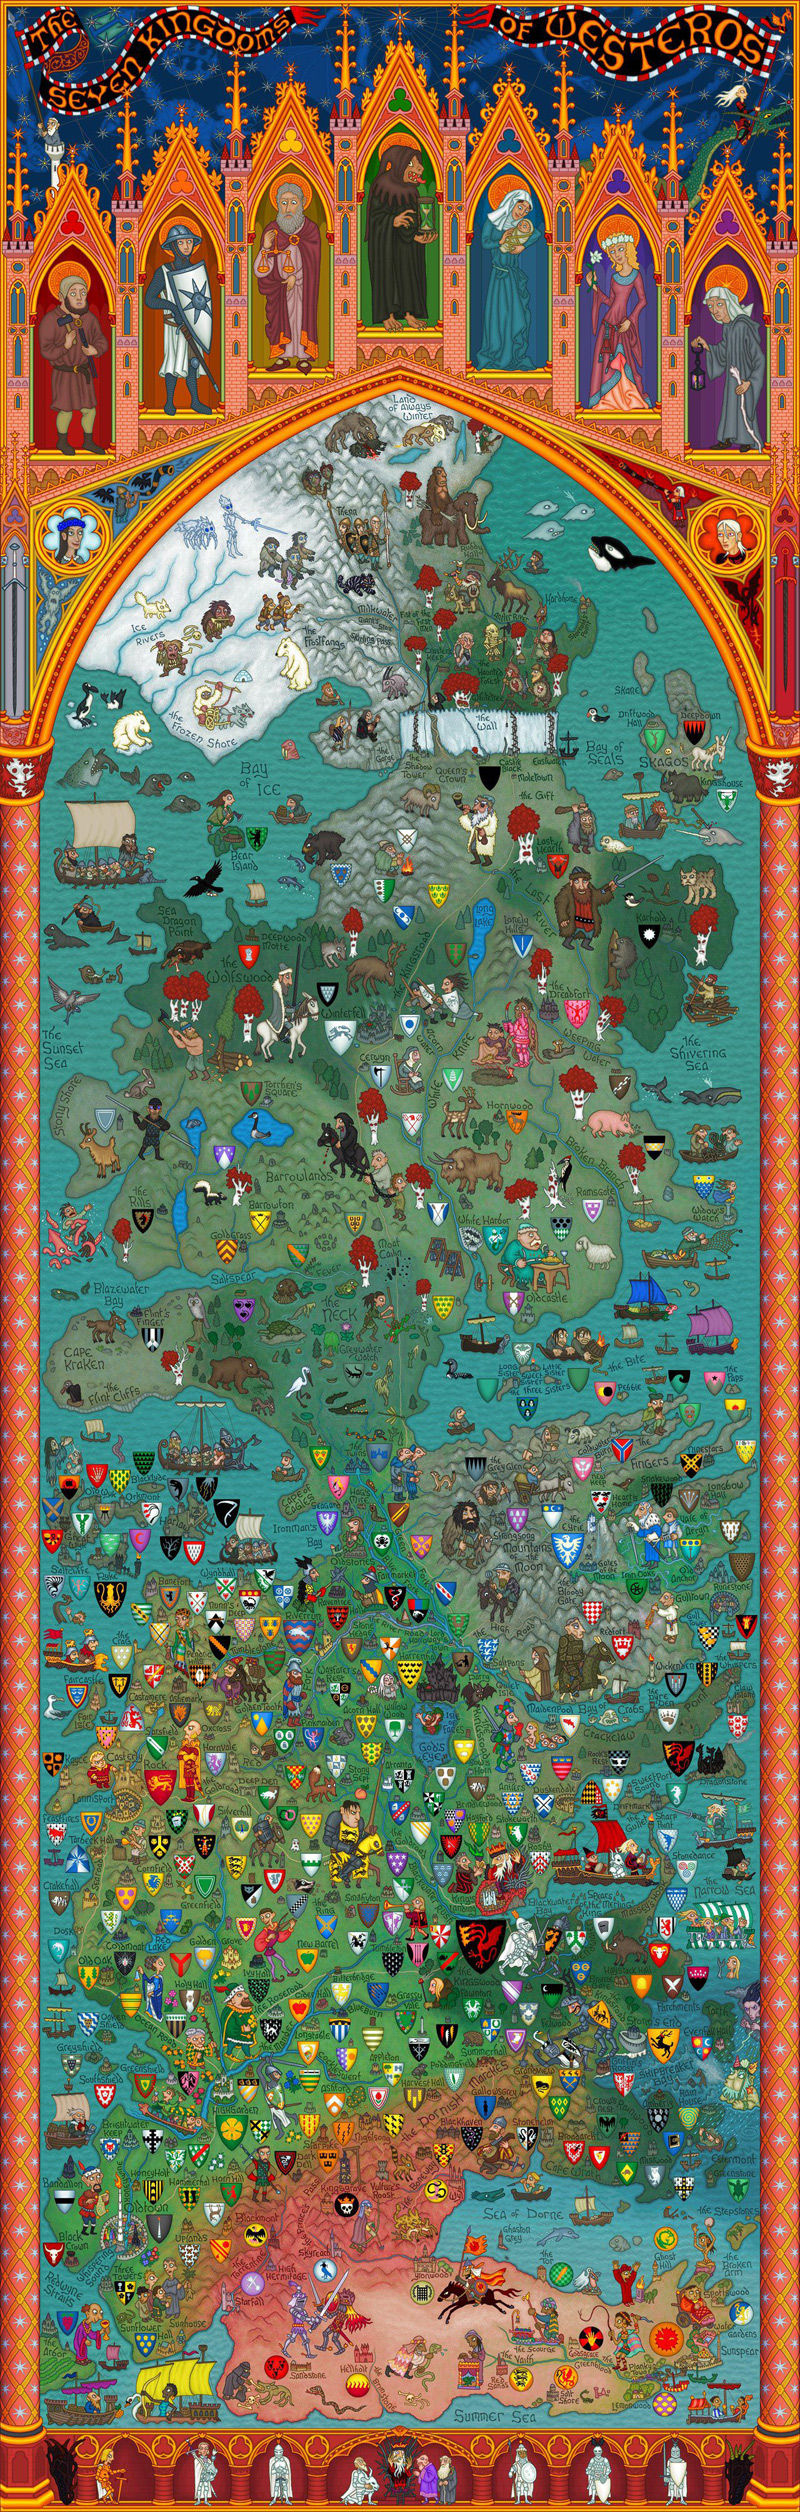 Game Of Thrones Map Of The Seven Kingdoms Of Westeros